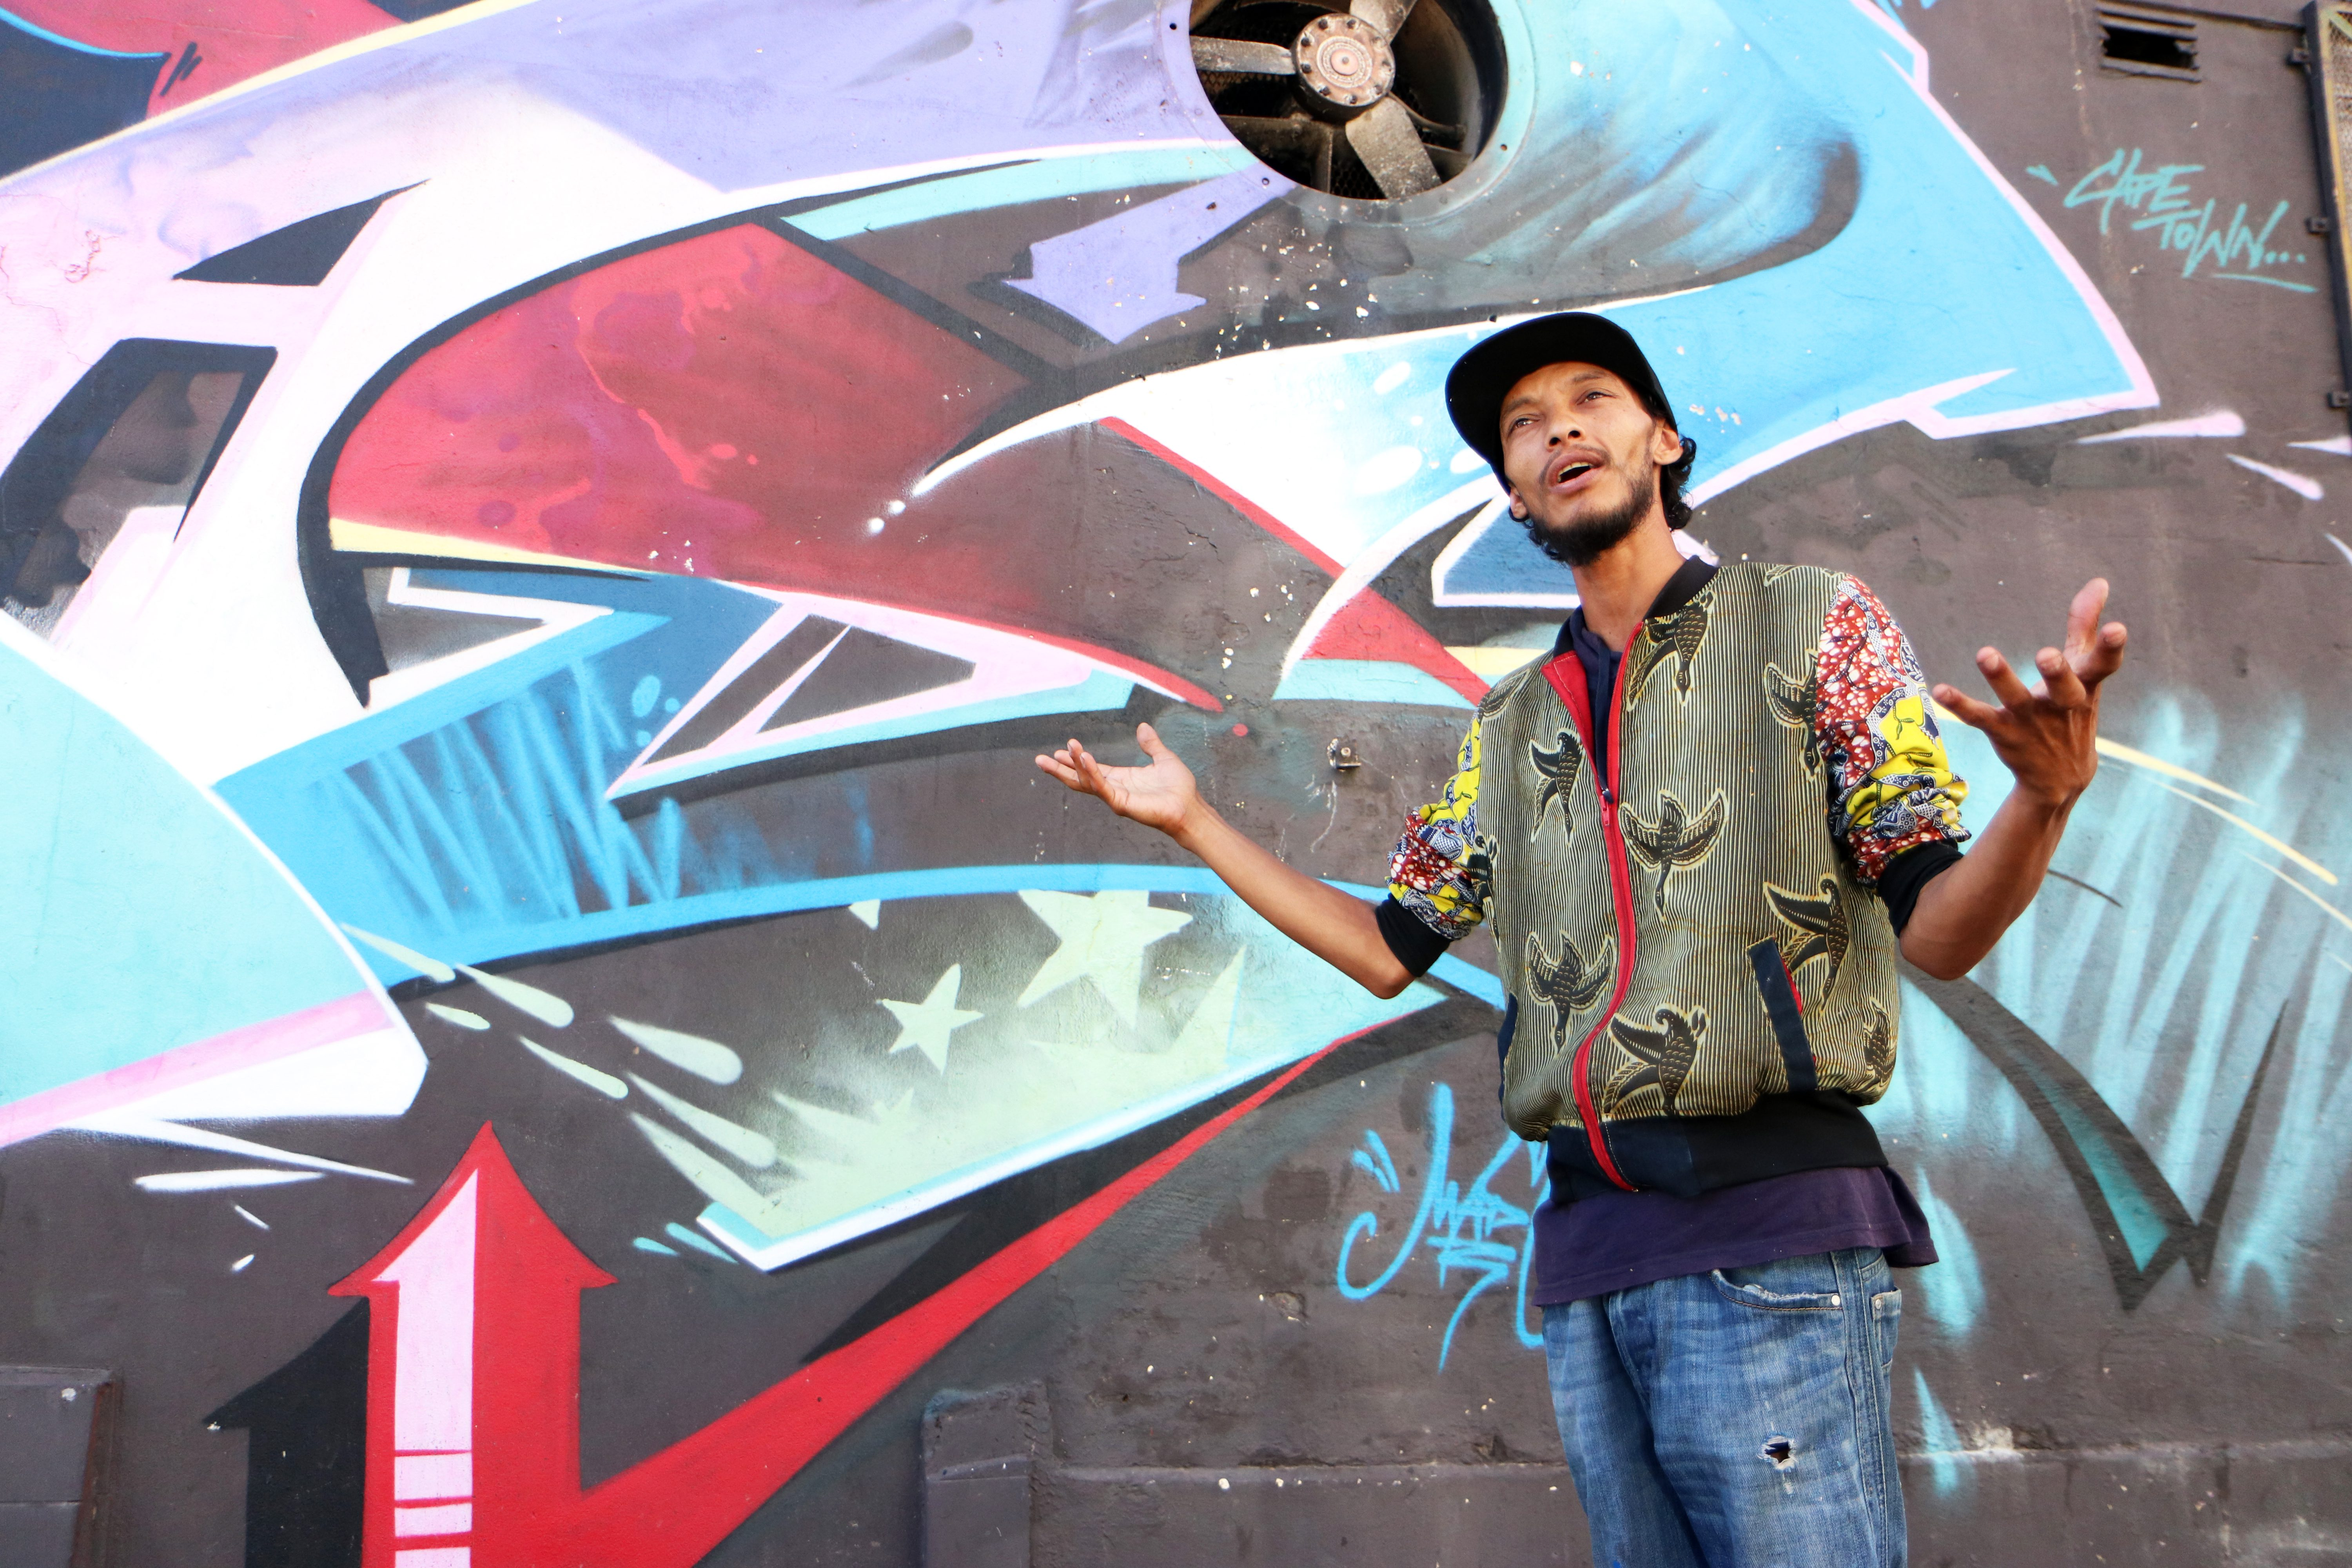 Street artist, DFeat Once, discusses grafitti in Woodstock, Cape Town